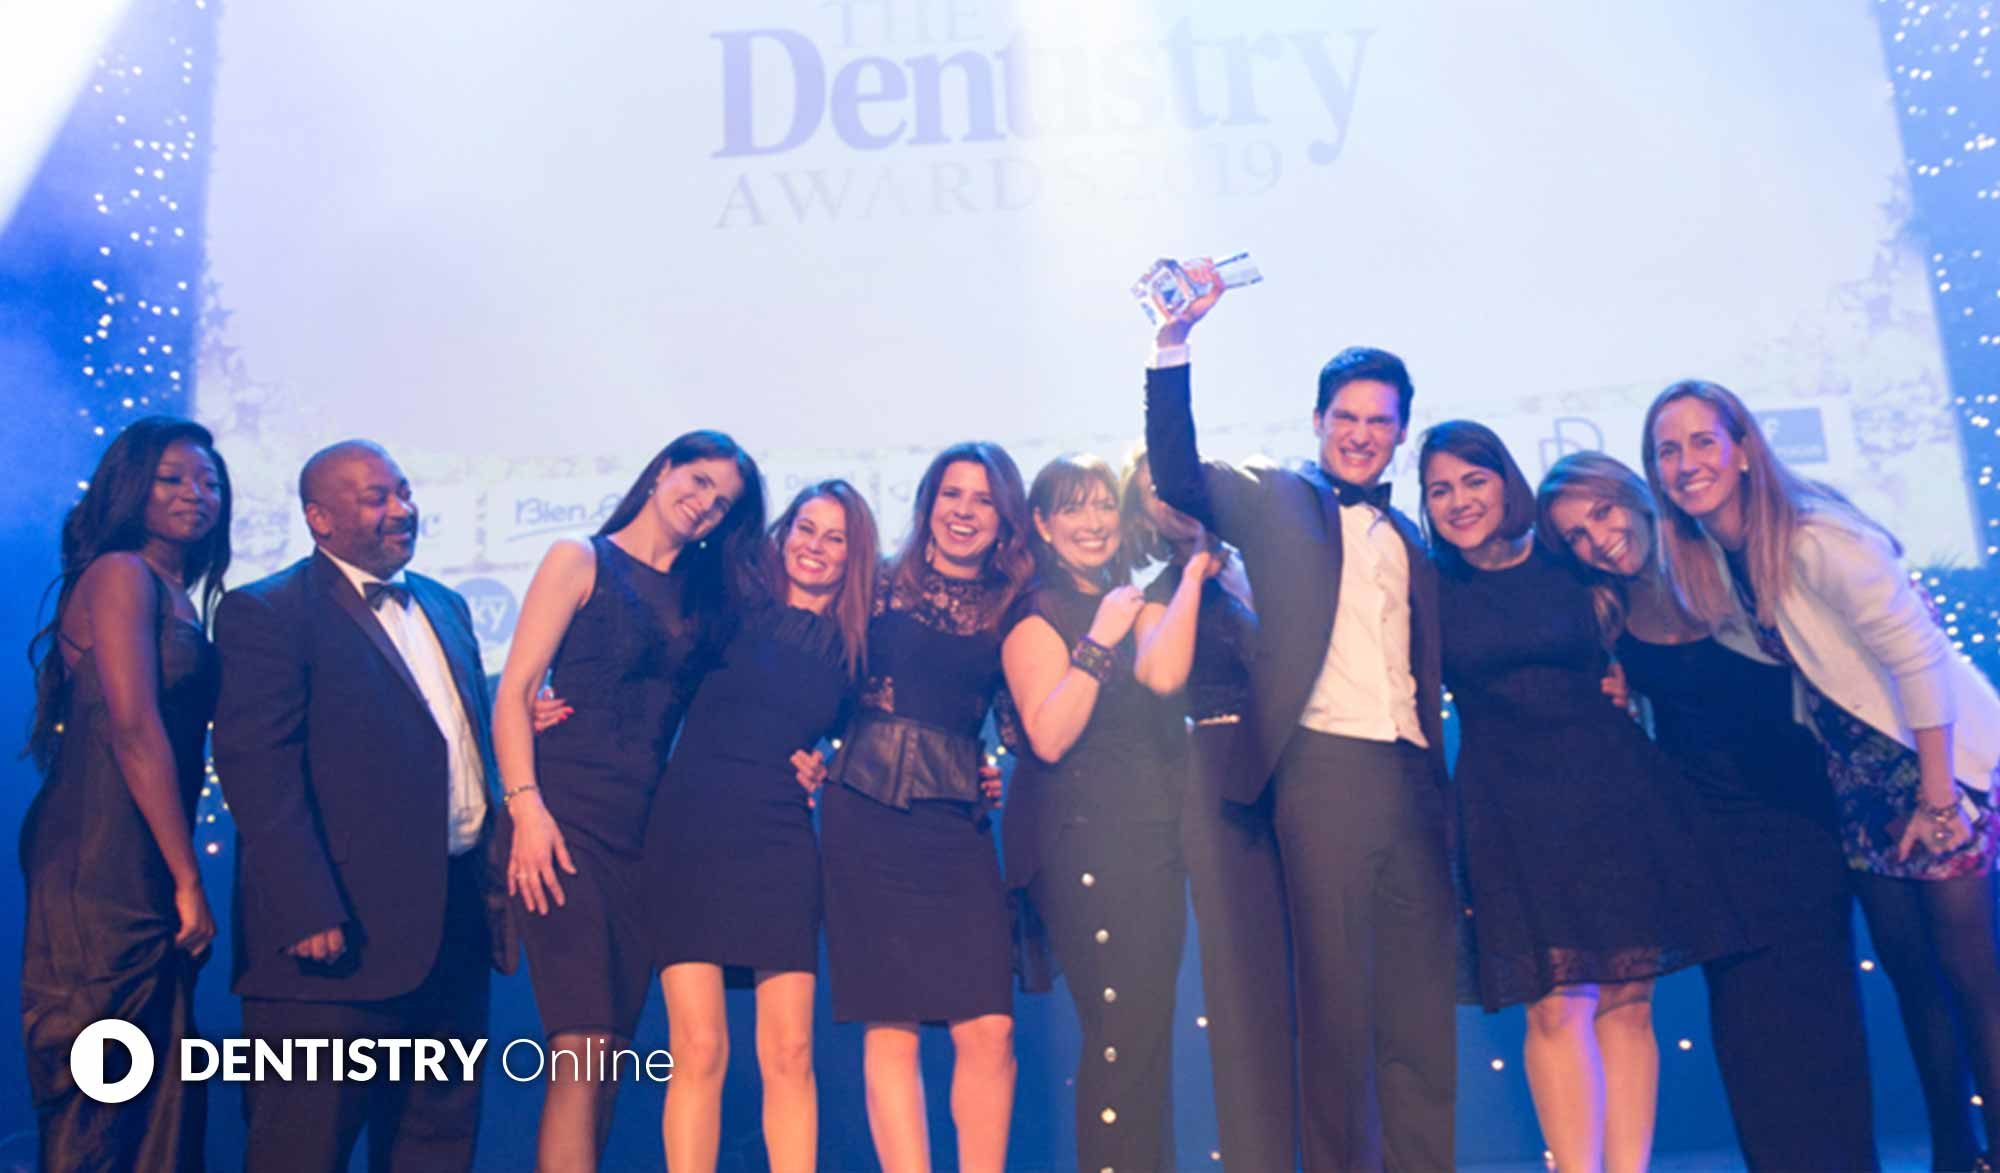 Dentistry Awards winners